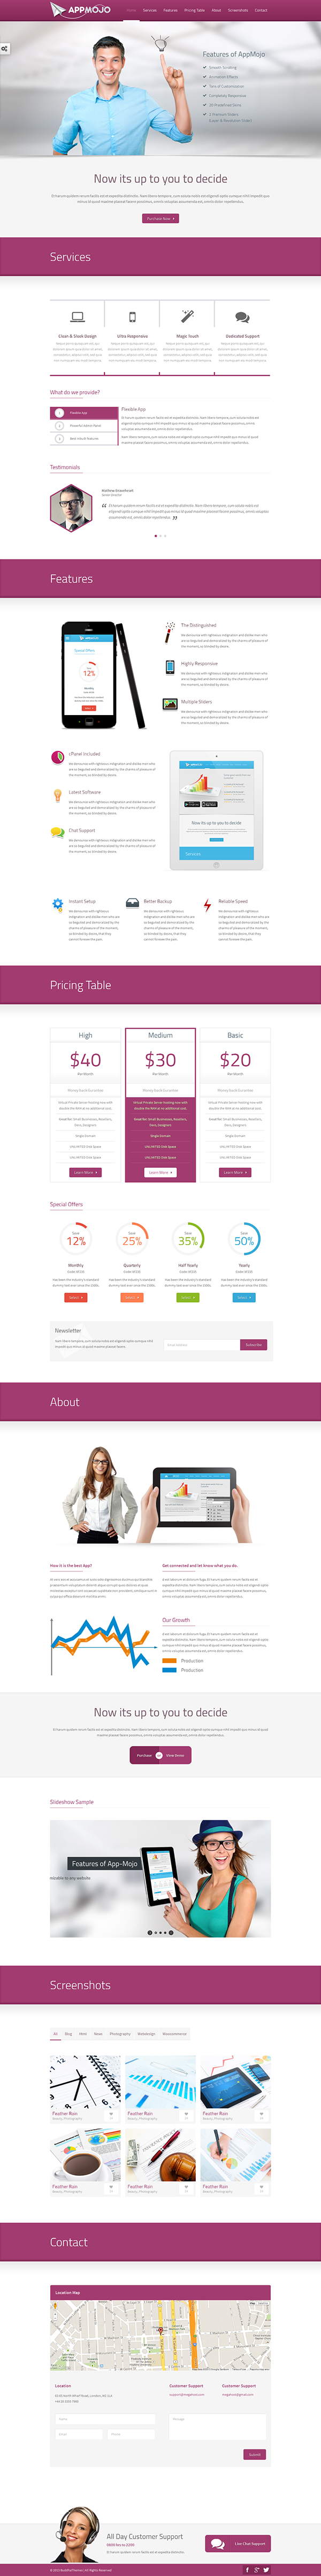 App mojo single page software promotion html on pantone for Page 3 salon coimbatore